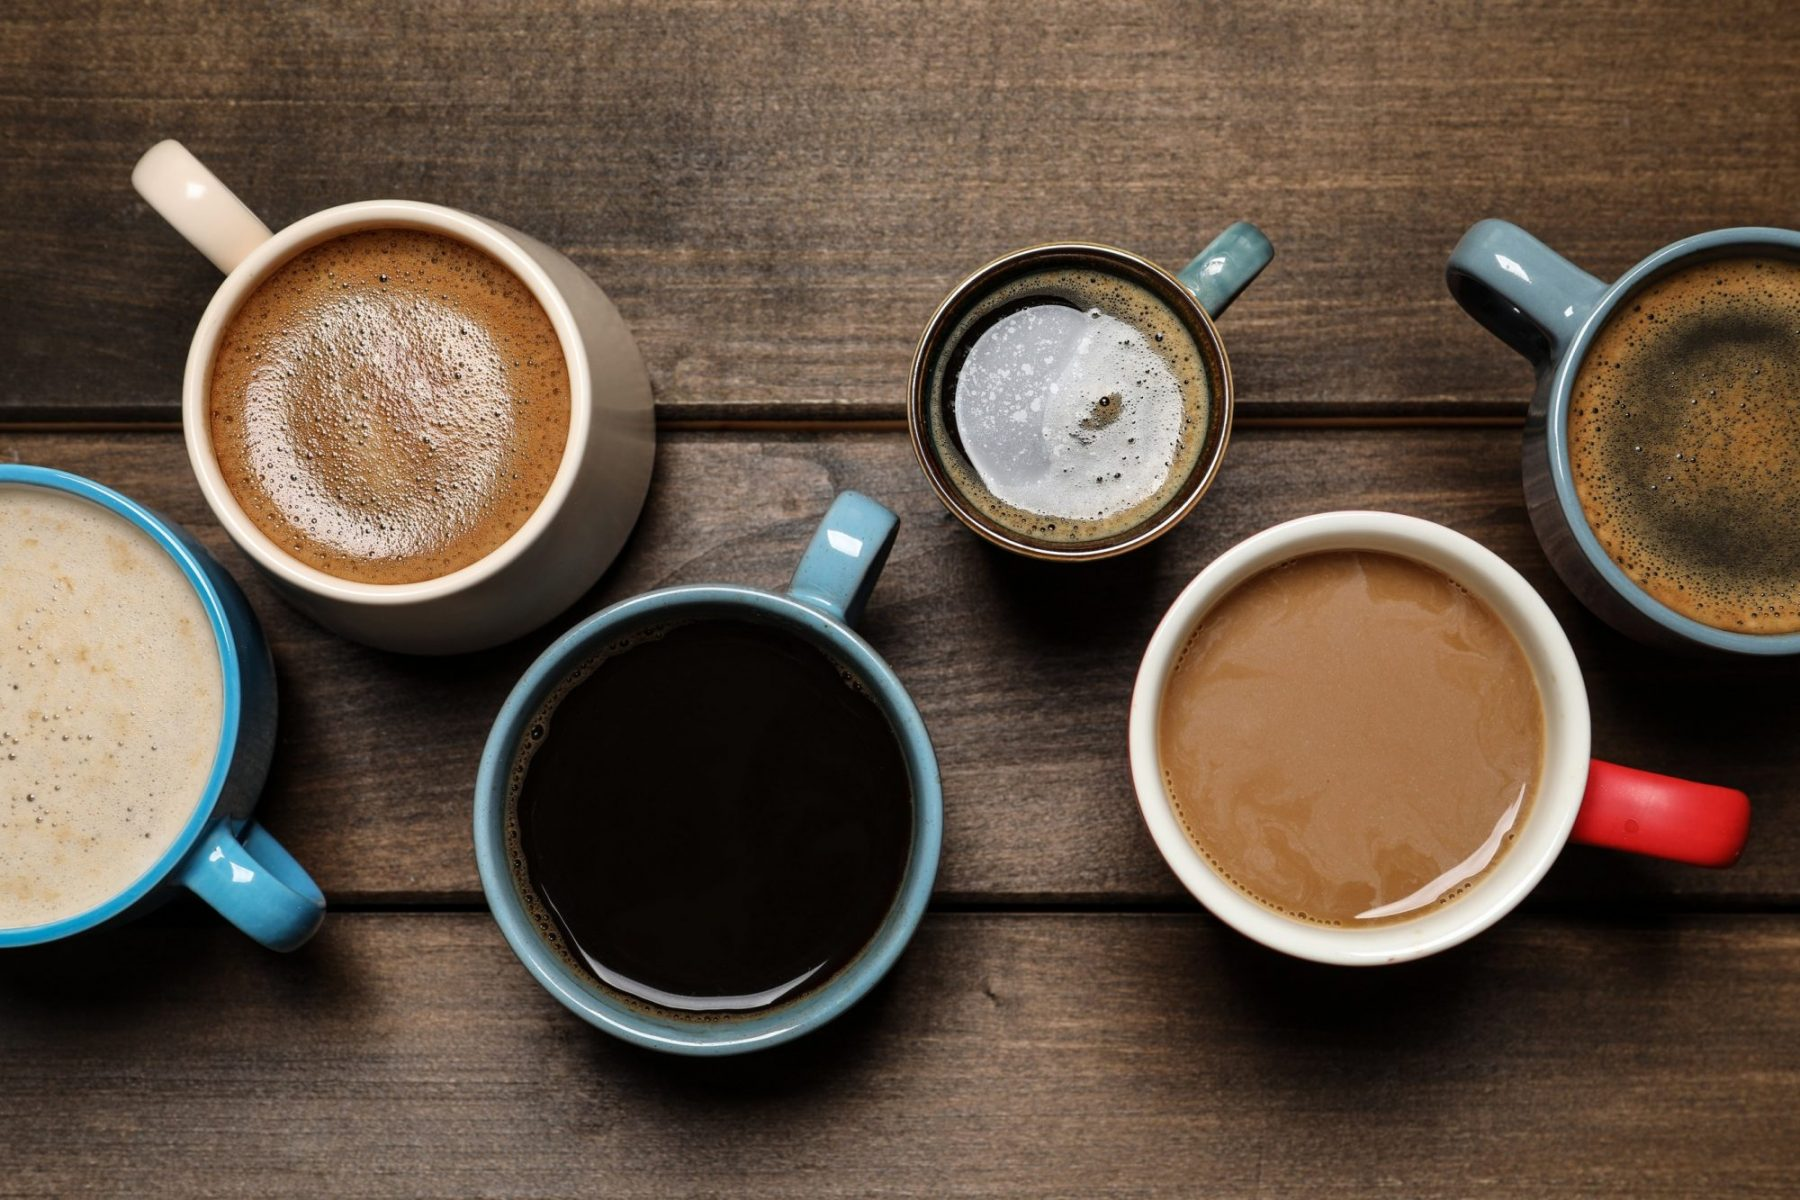 Southern California, the Central Coast and Bakersfield Area Workplace Culture   Single-Cup Coffee Service   Employee Benefit   Coffee Products